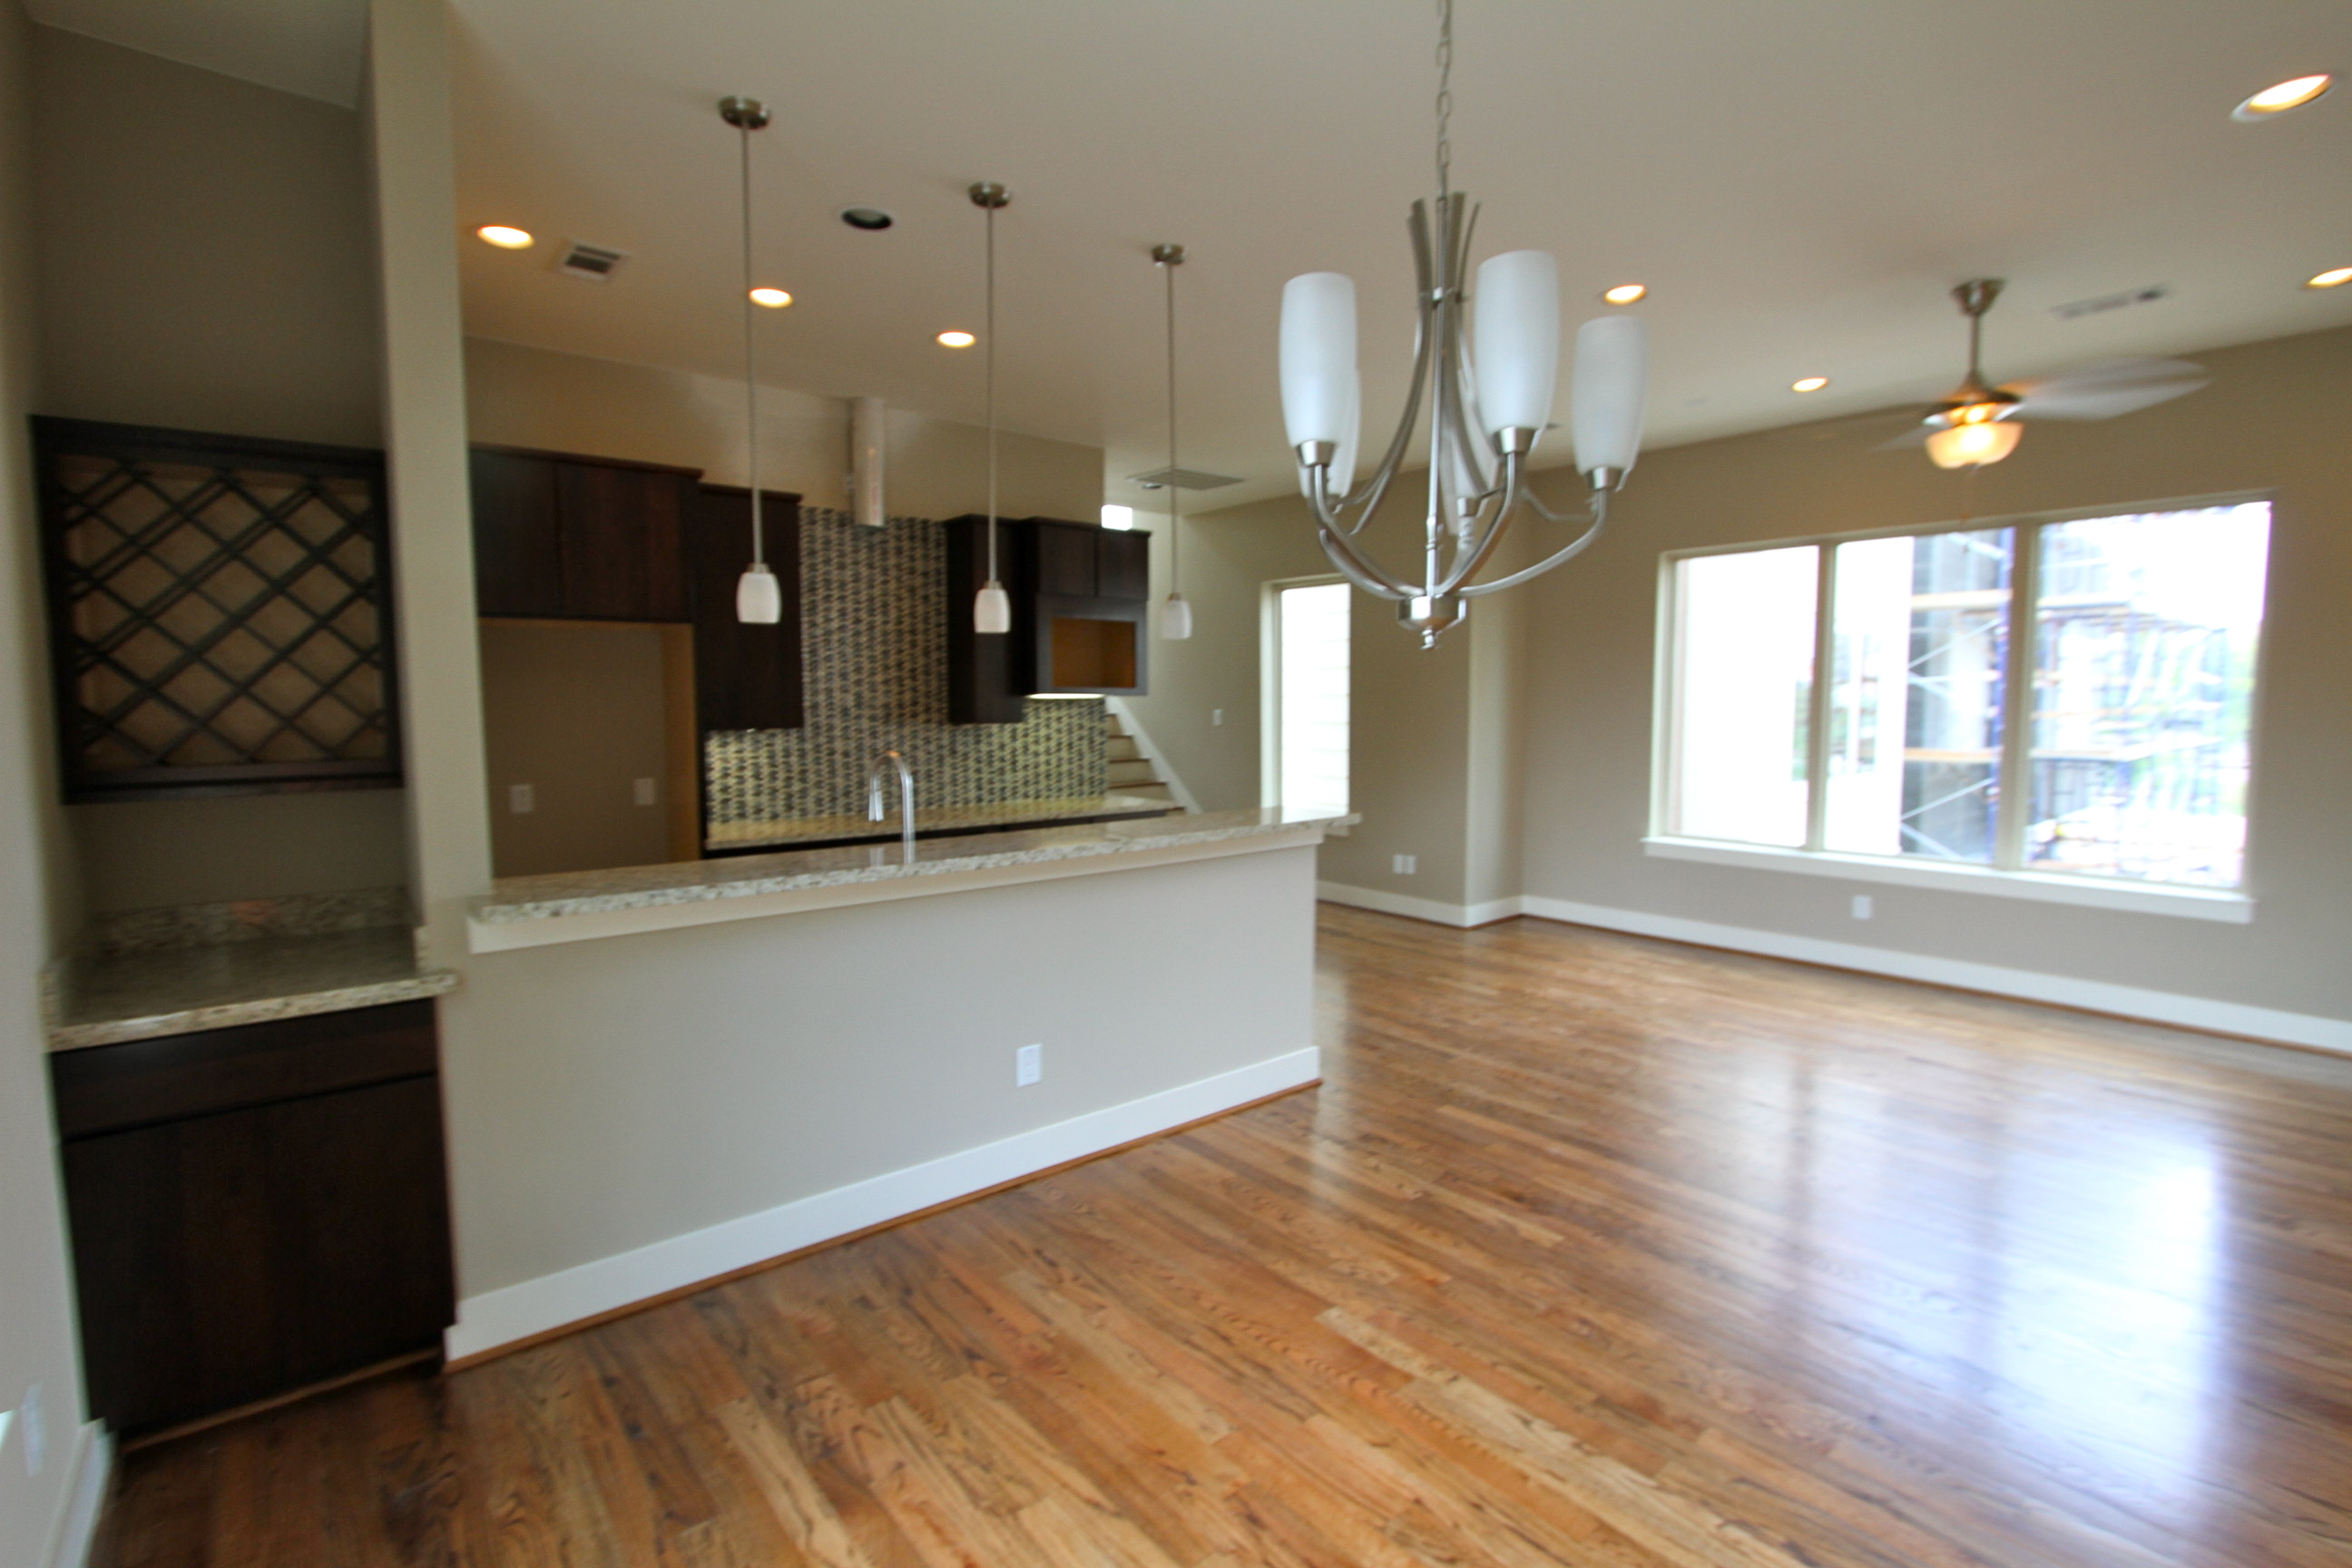 Kitchen - Wood Floor - Drake Homes Inc